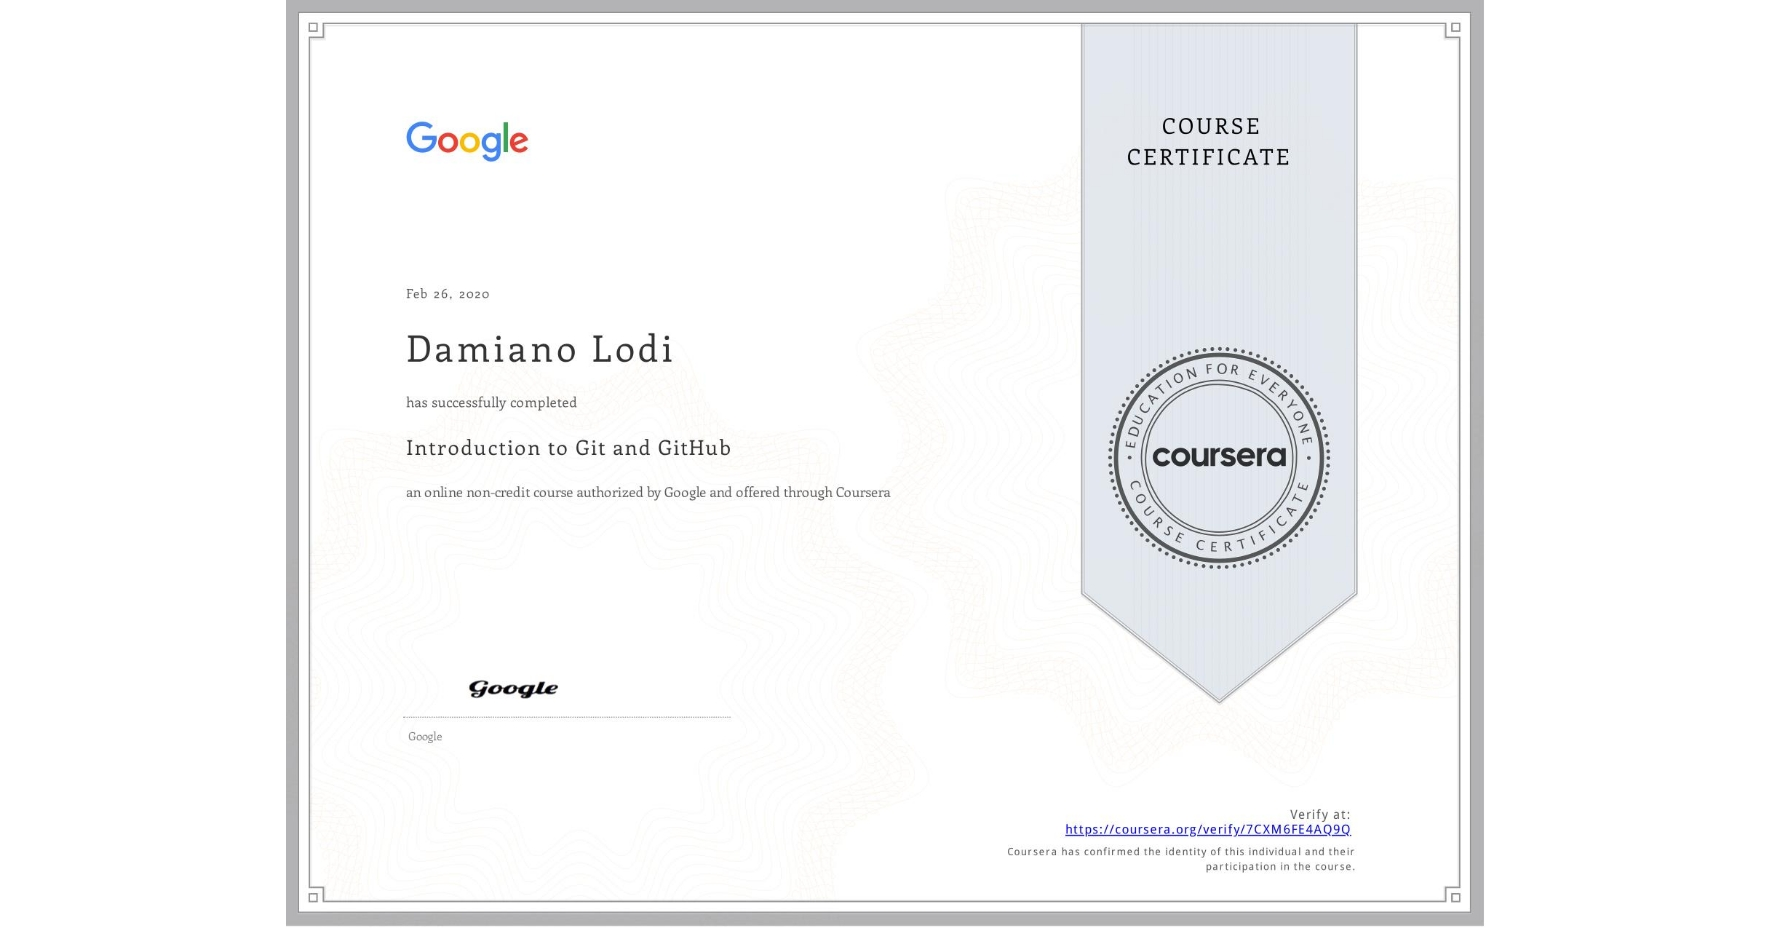 View certificate for Damiano Lodi, Introduction to Git and GitHub, an online non-credit course authorized by Google and offered through Coursera